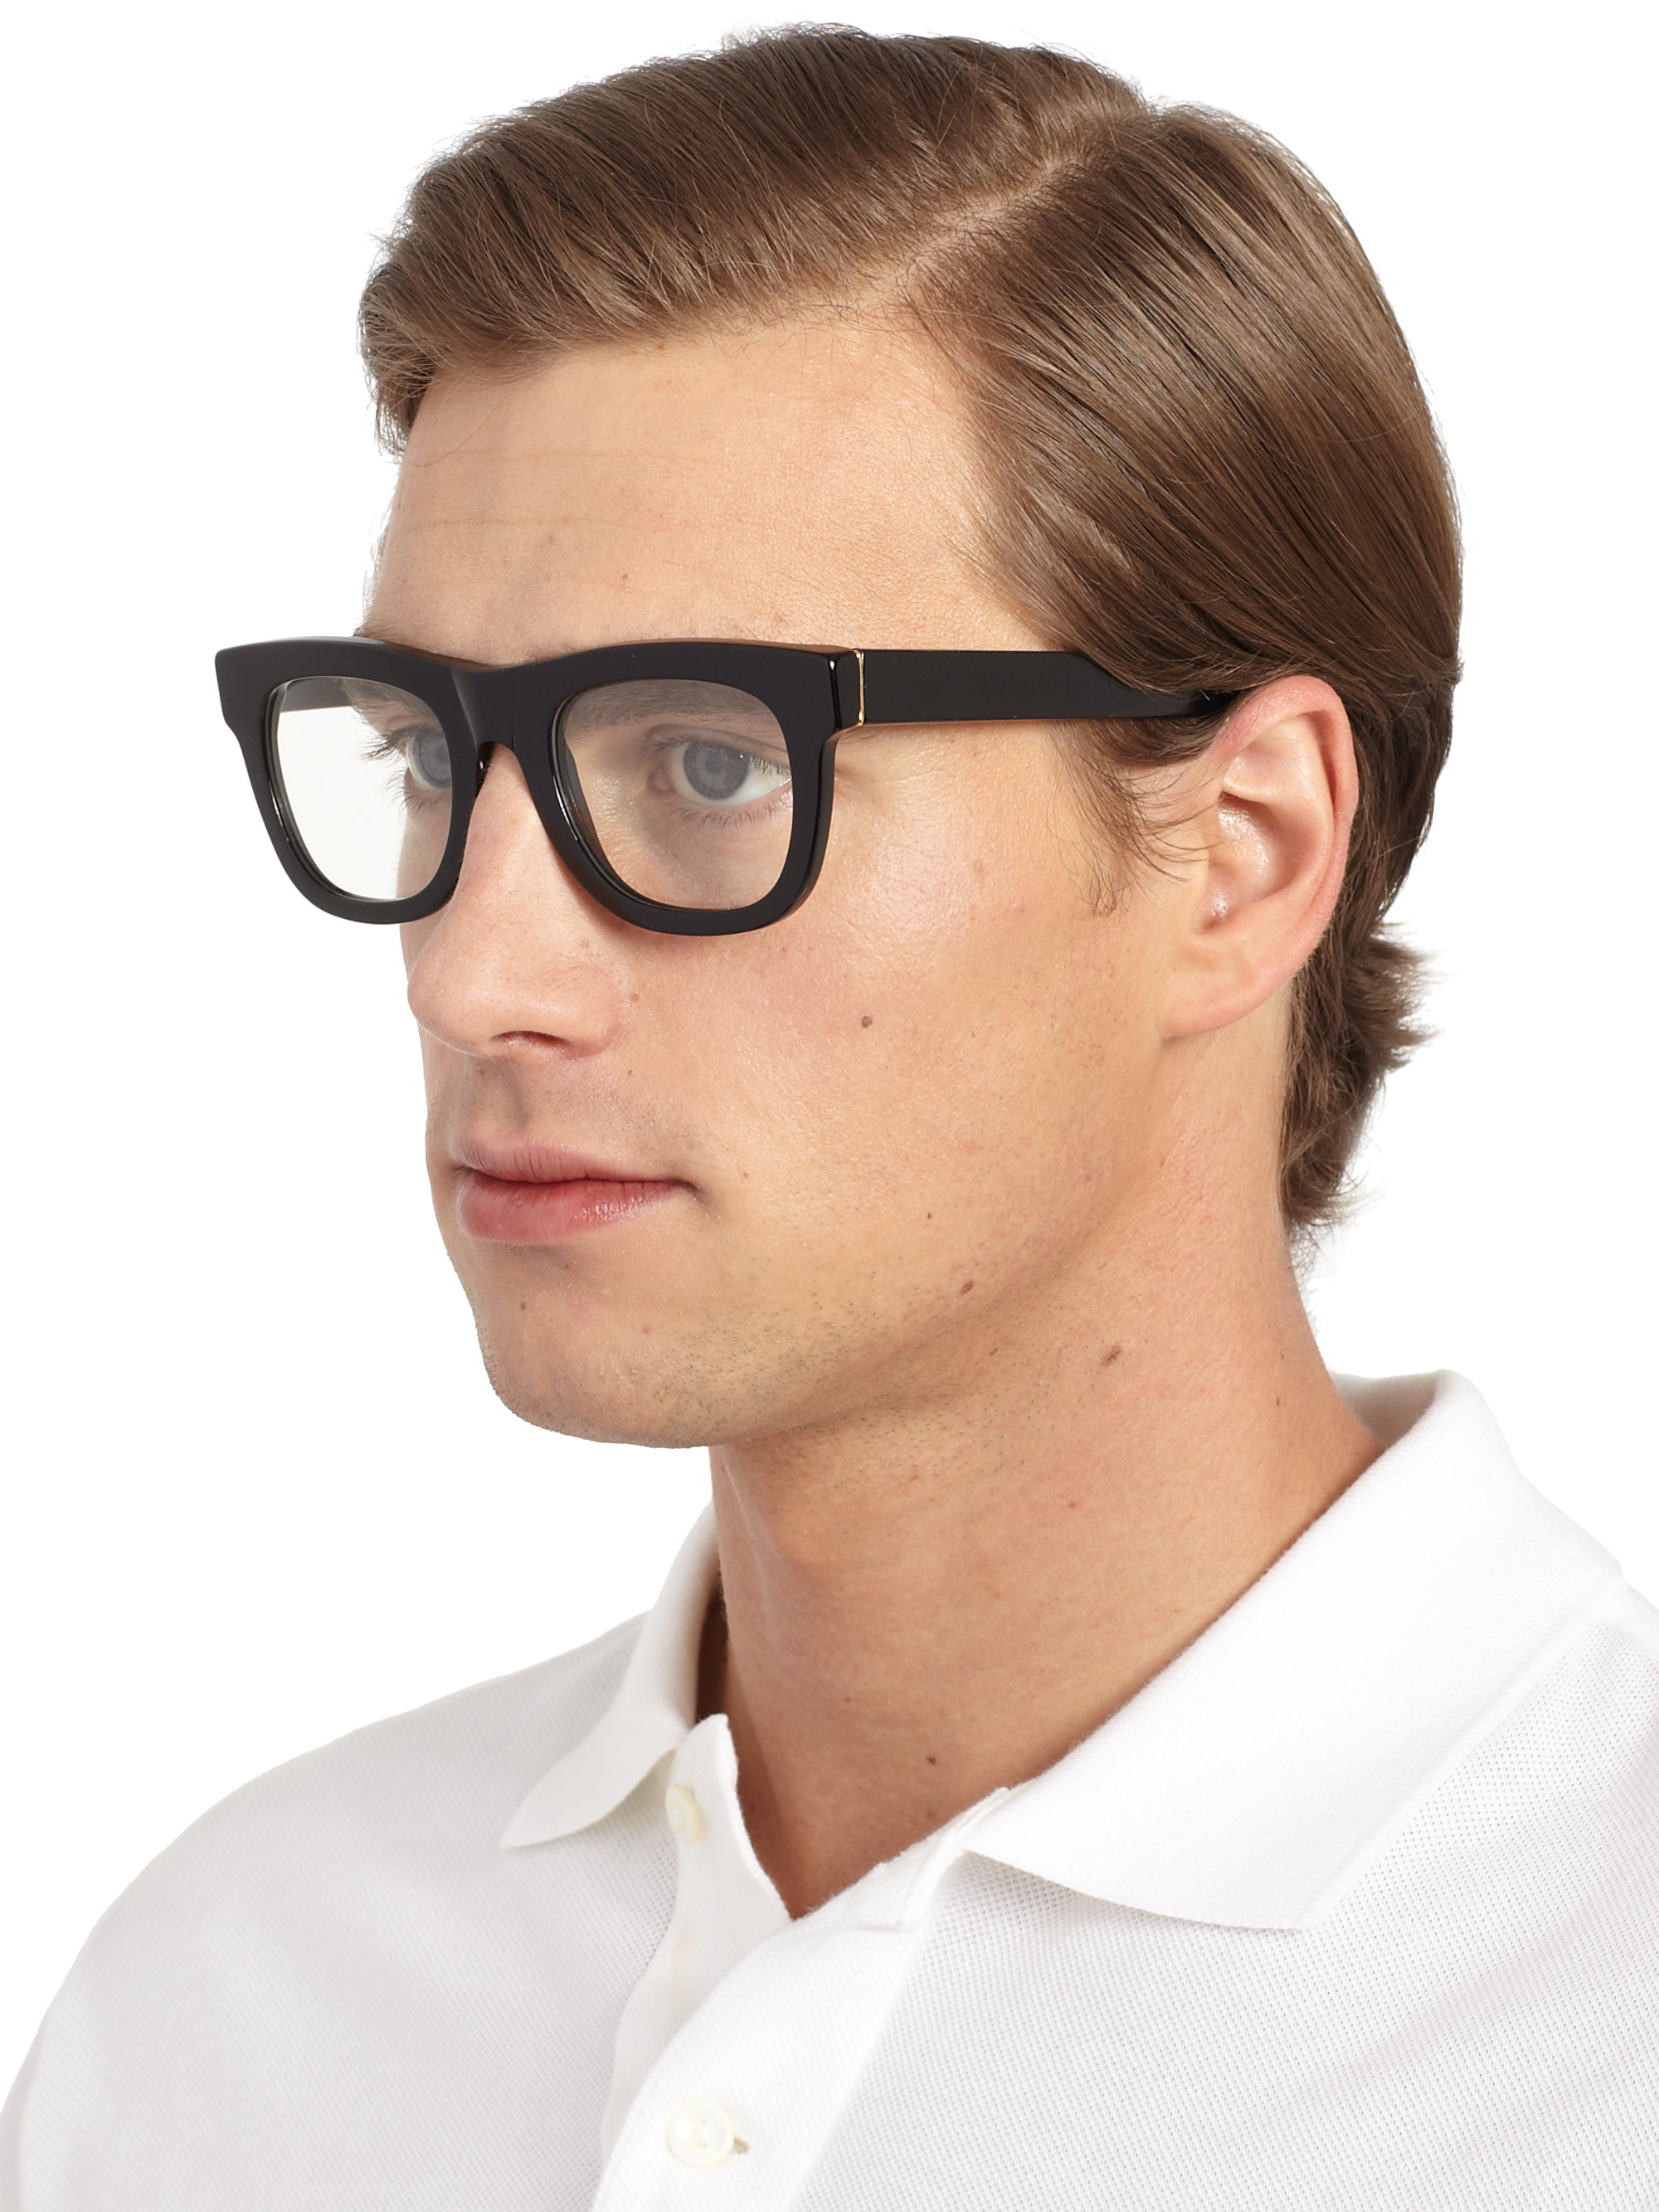 Camo Frames For Glasses